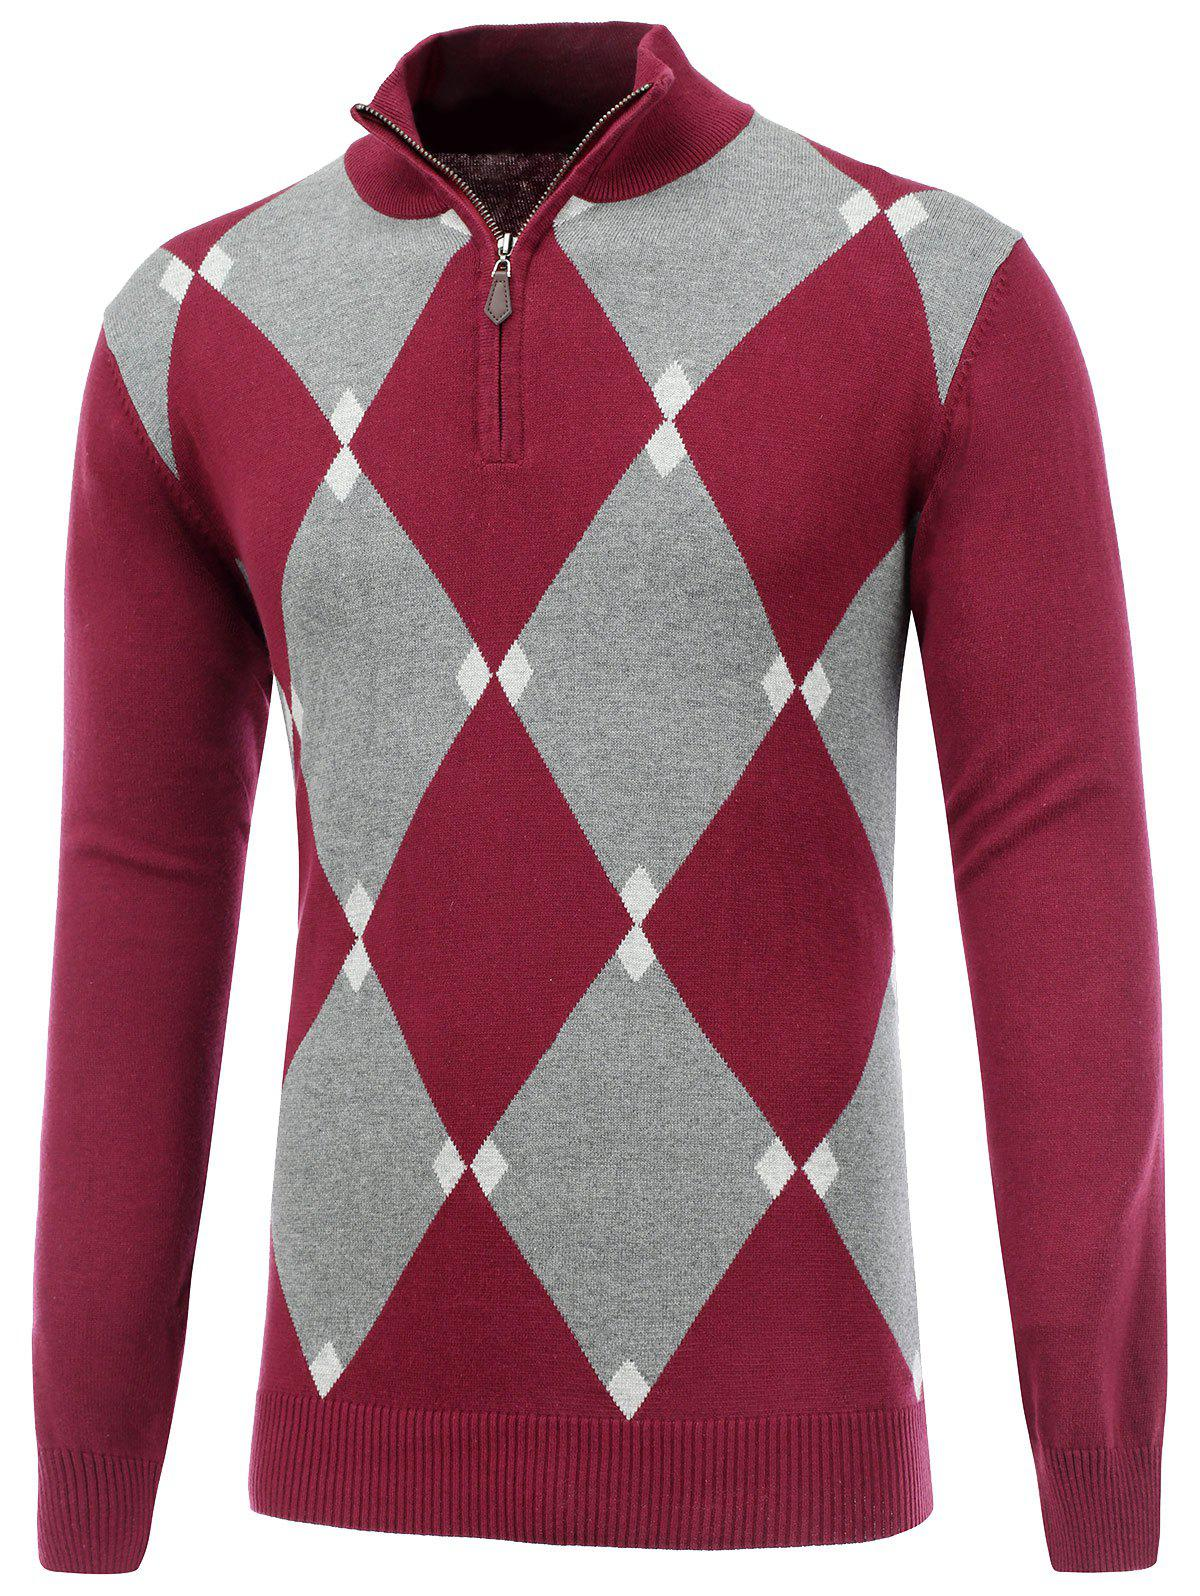 2017 Half Zip Up Harlequin Pattern Sweater RED S In Cardigans ...